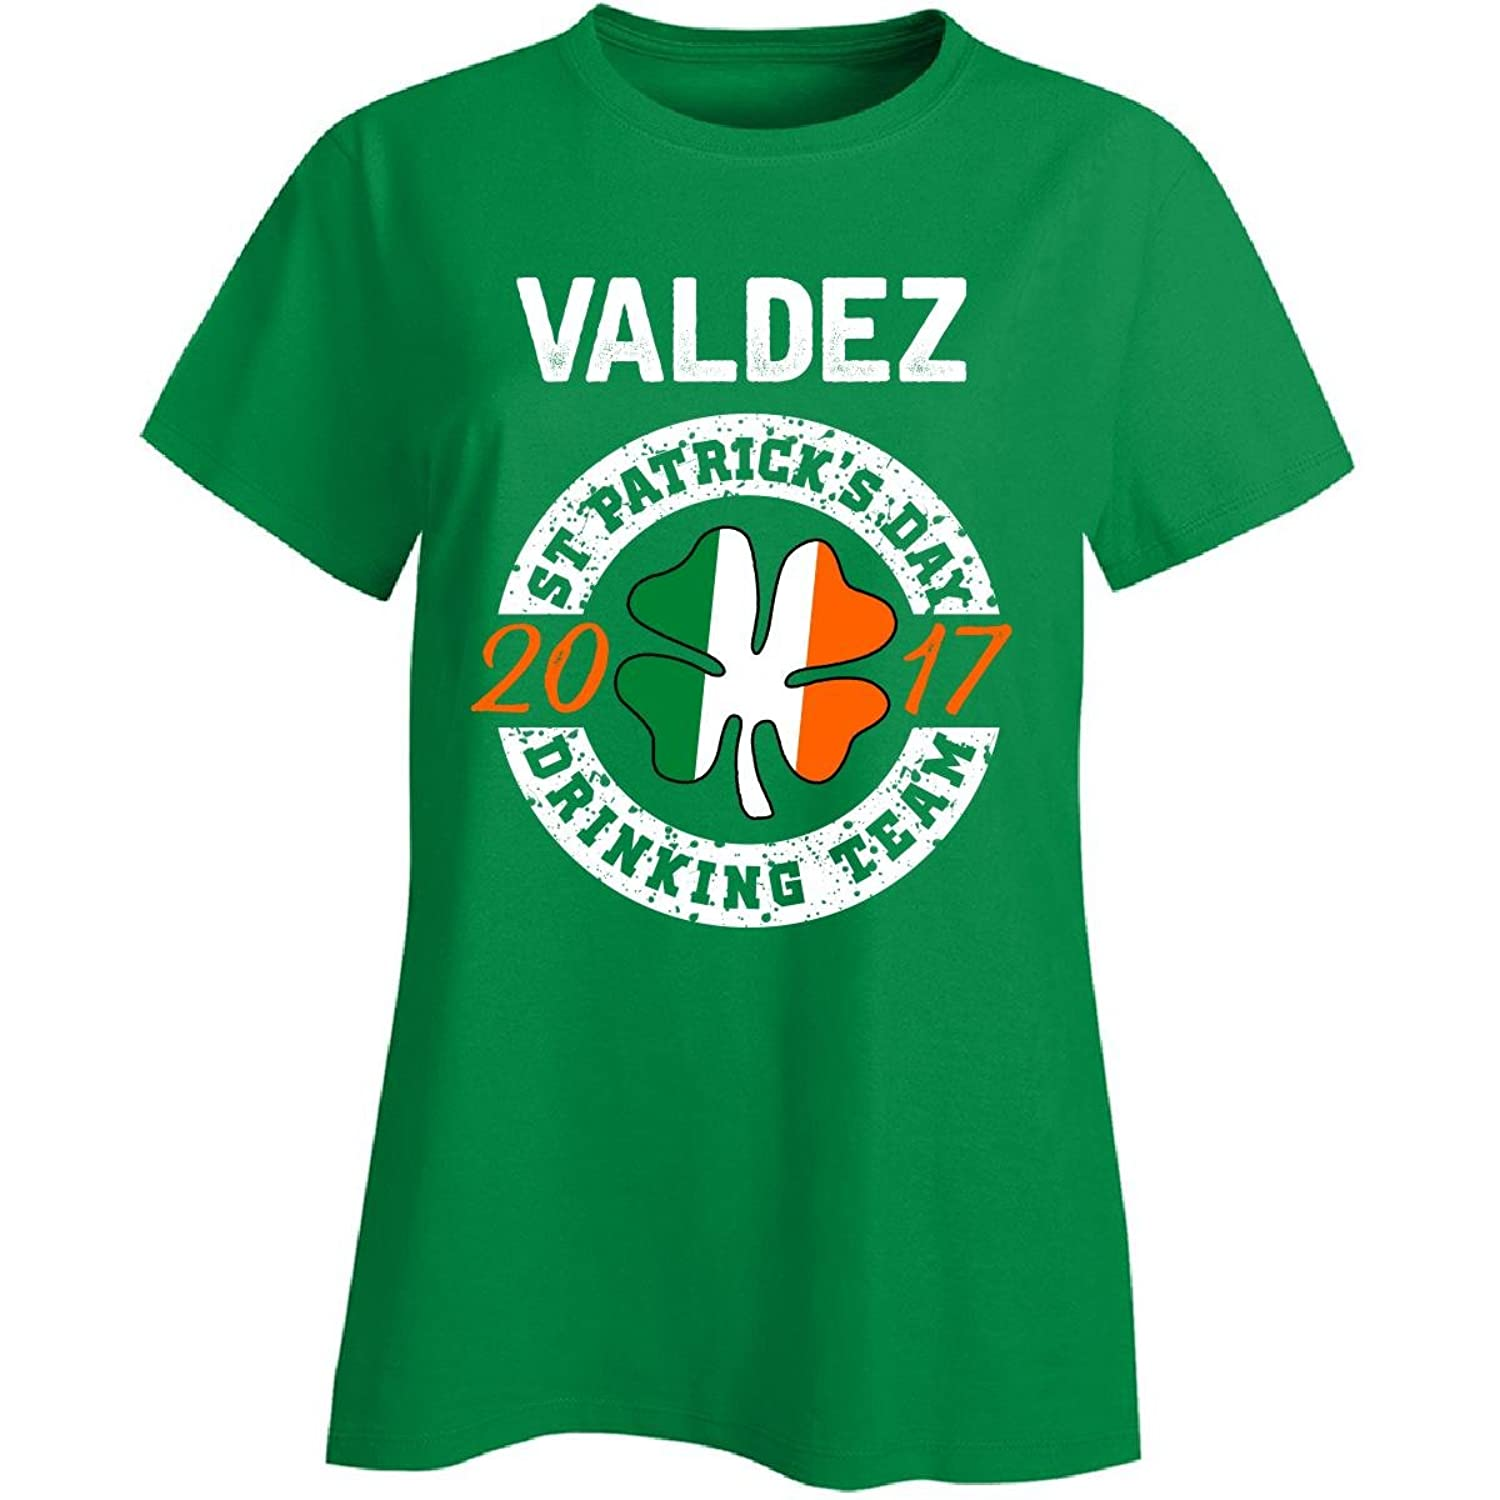 Valdez St Patricks Day 2017 Drinking Team Irish - Ladies T-shirt